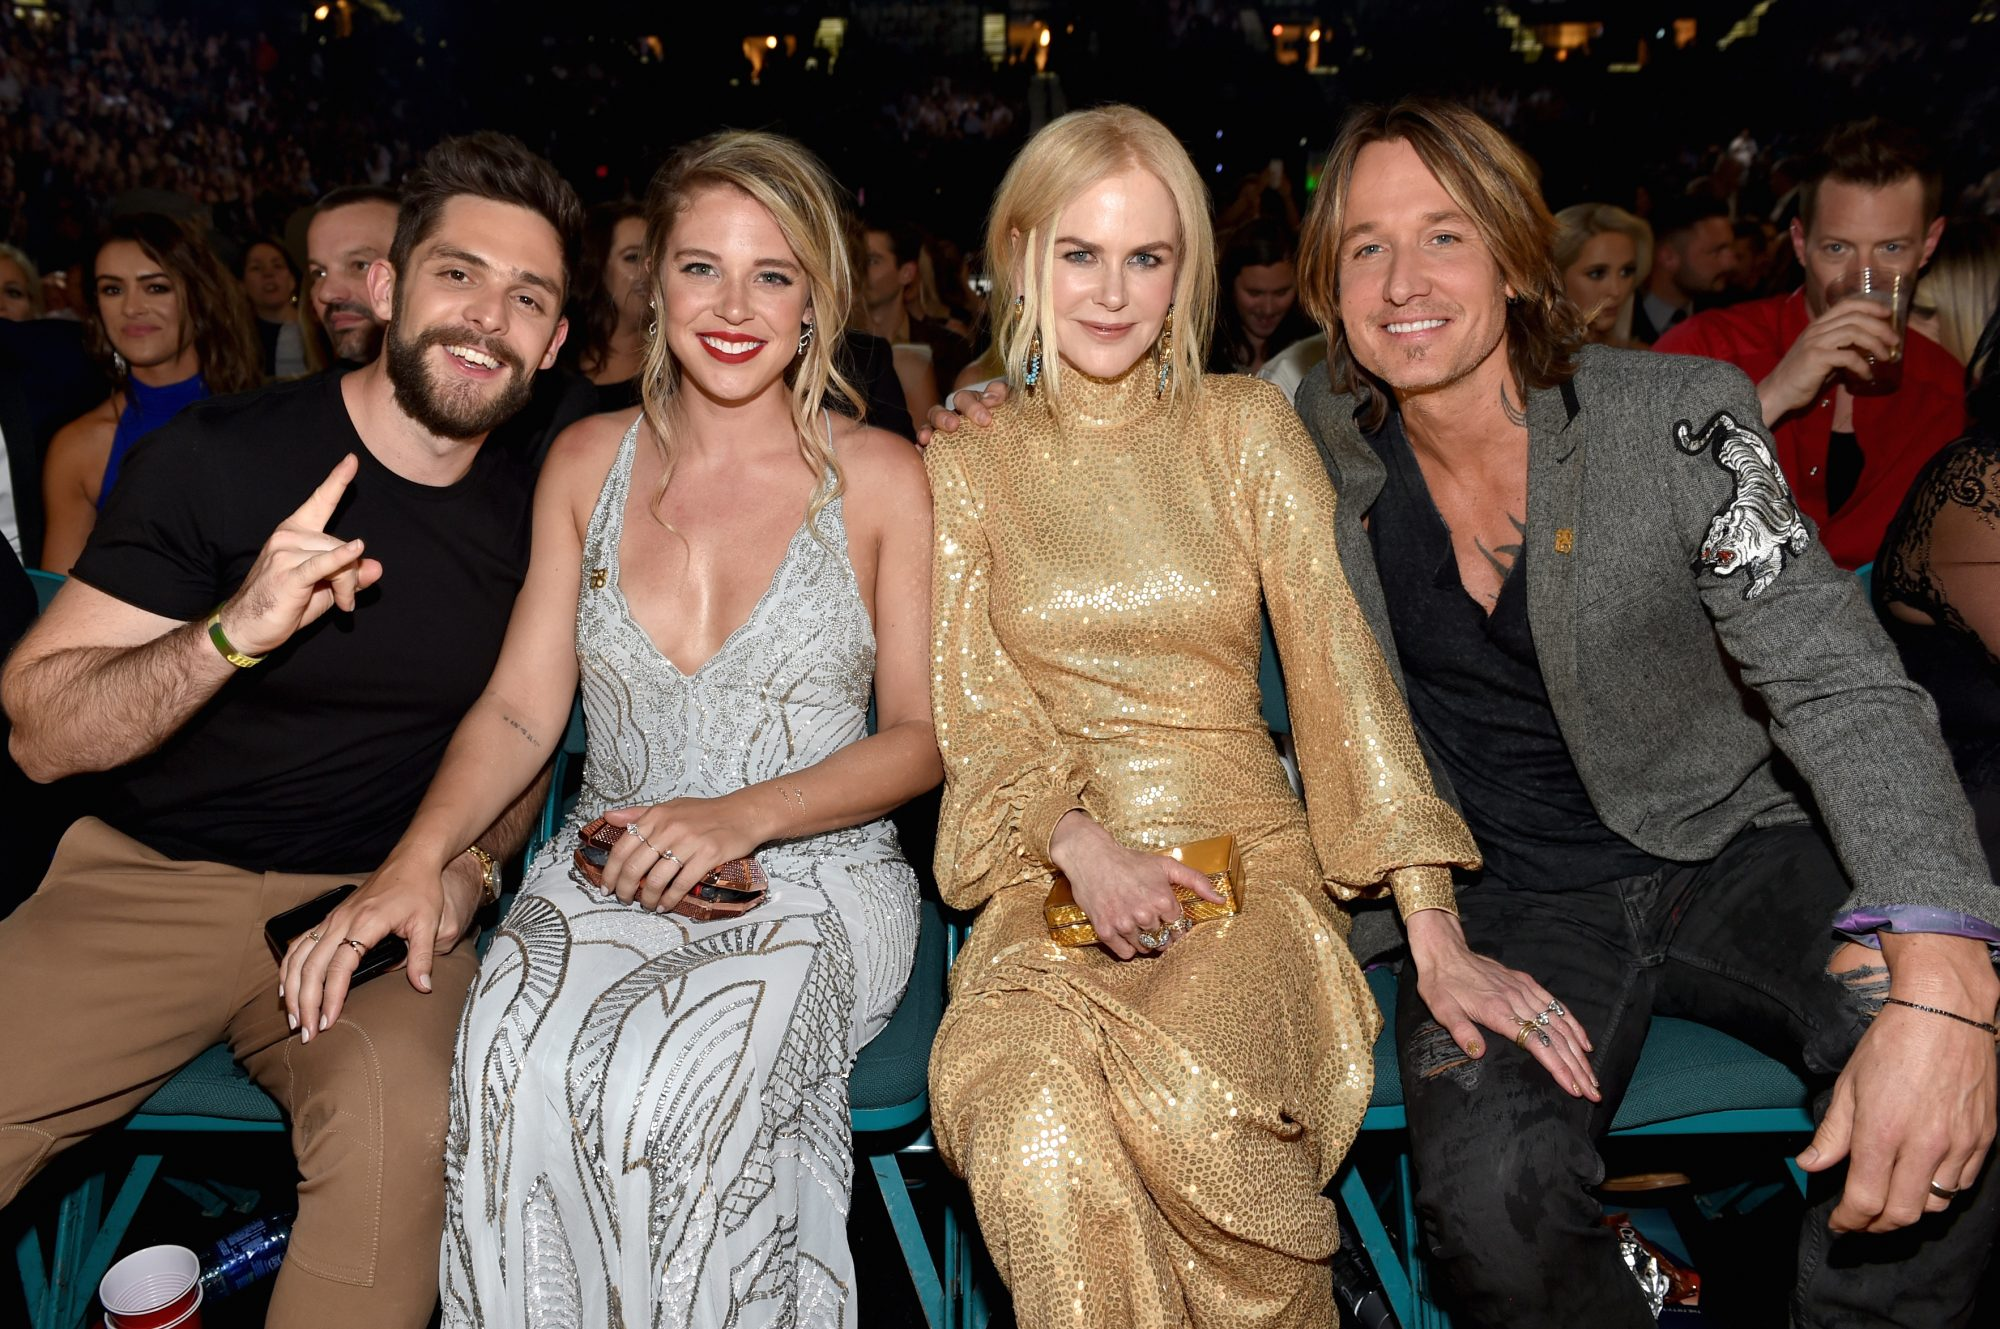 Lauren Akins and Nicole Kidman with Husbands